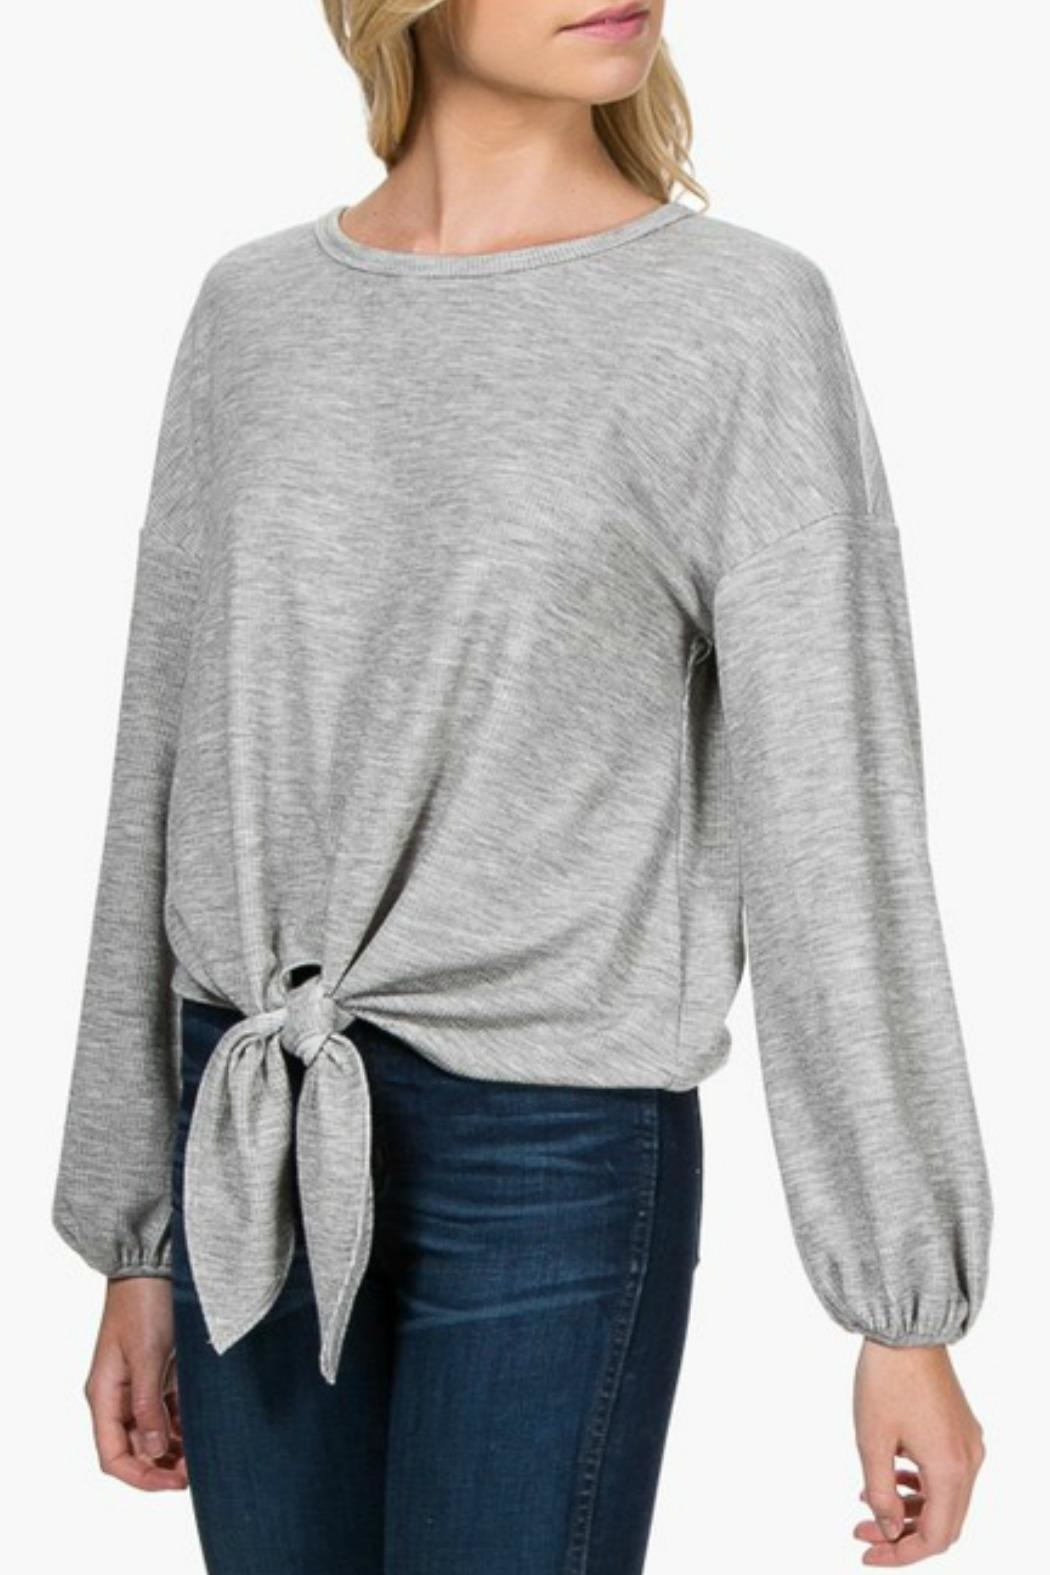 Everly Front-Tie Knit Top - Front Cropped Image